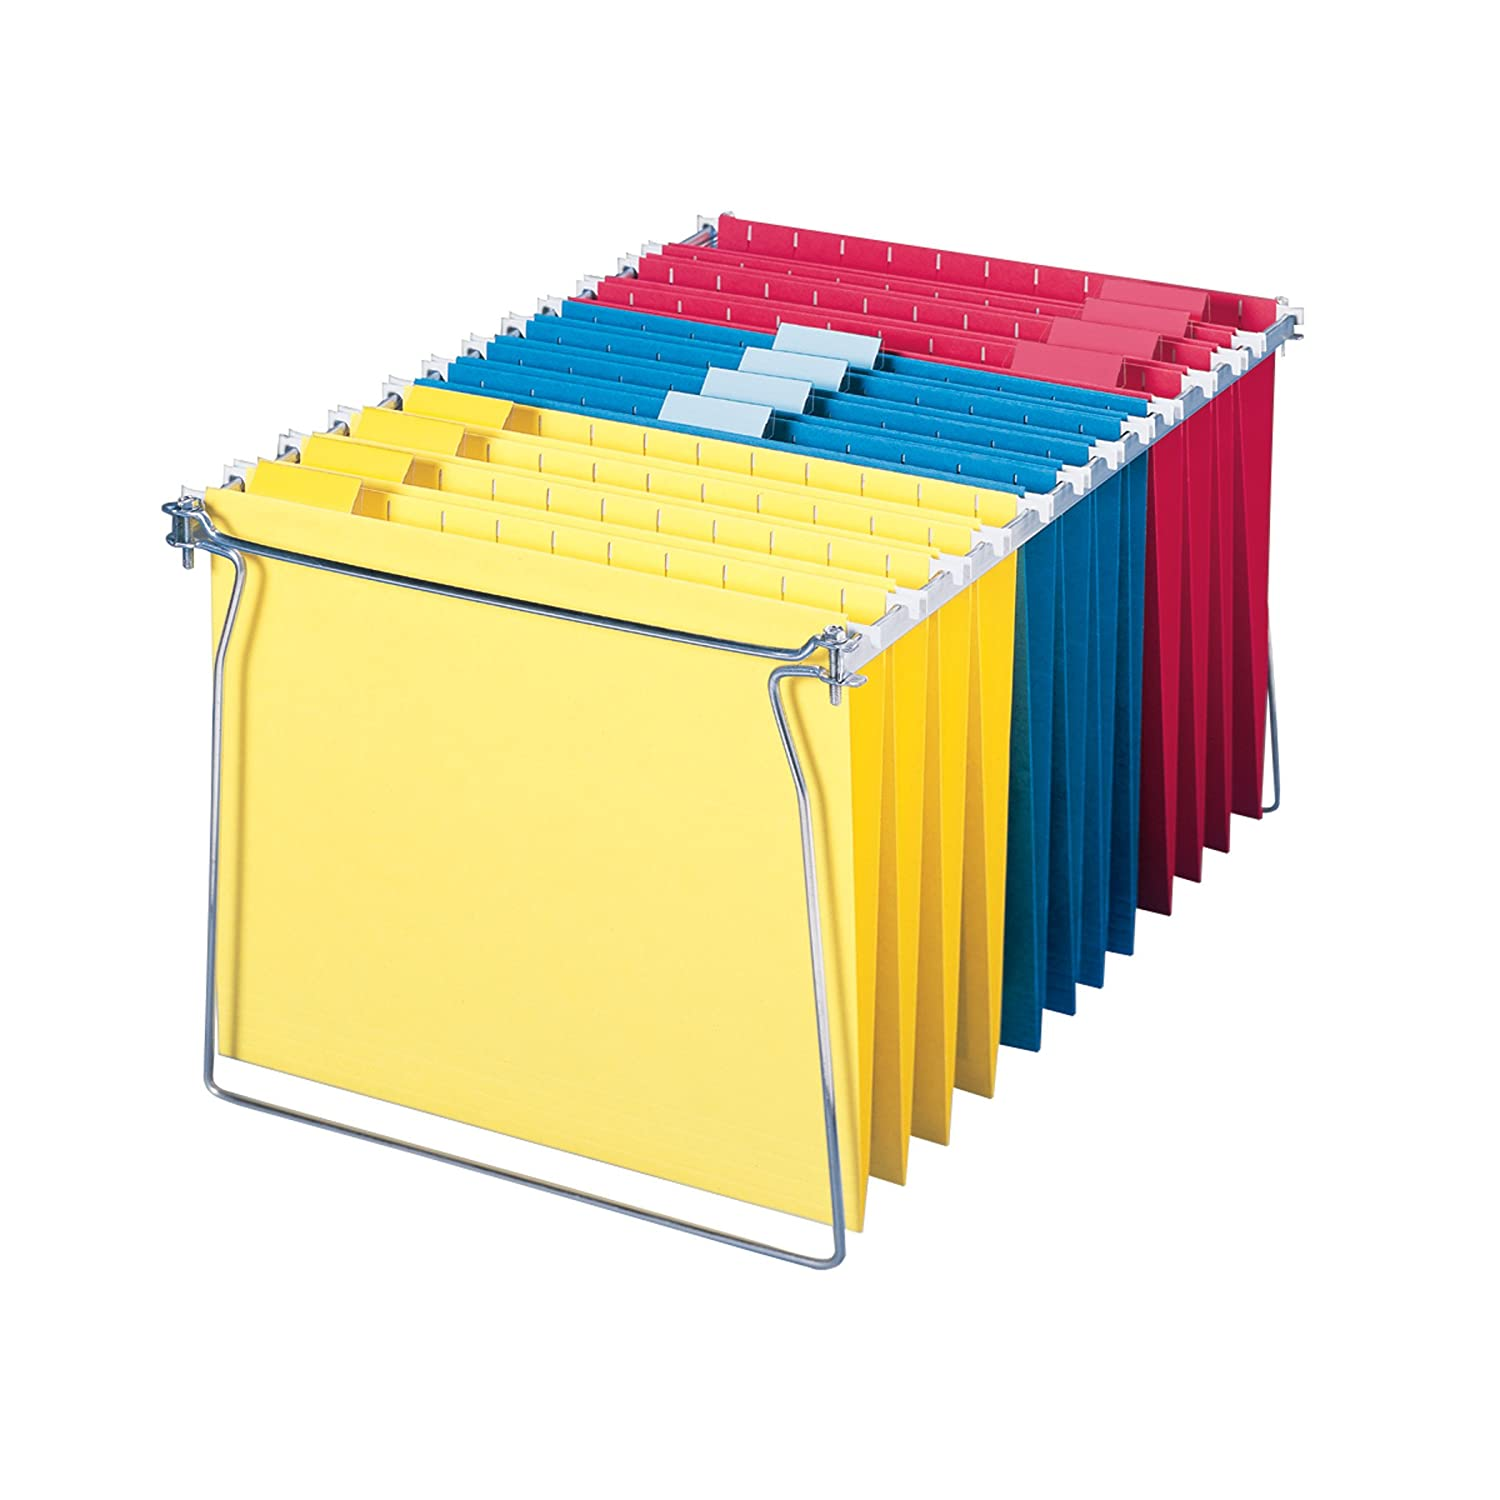 Smead Hanging Folders with 18-Inch Frame, Letter Size, 1/5 Cut Tab, Assorted Colors, 12 Per Pack plus Frame (64805)